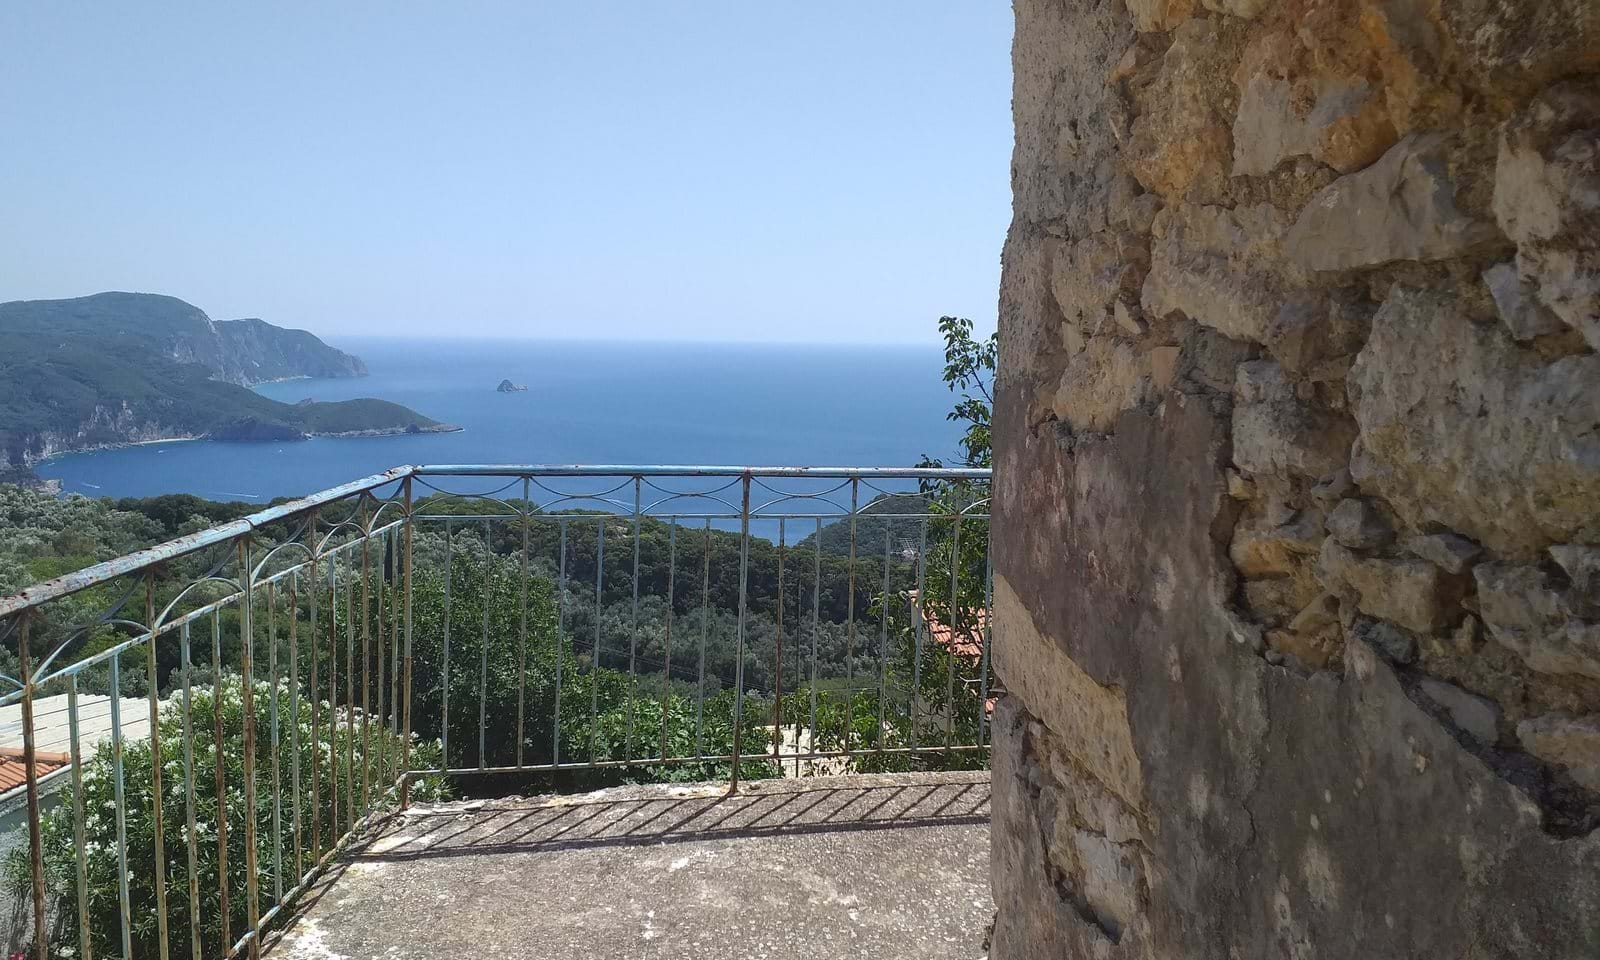 Property for sale in Lakones Corfu